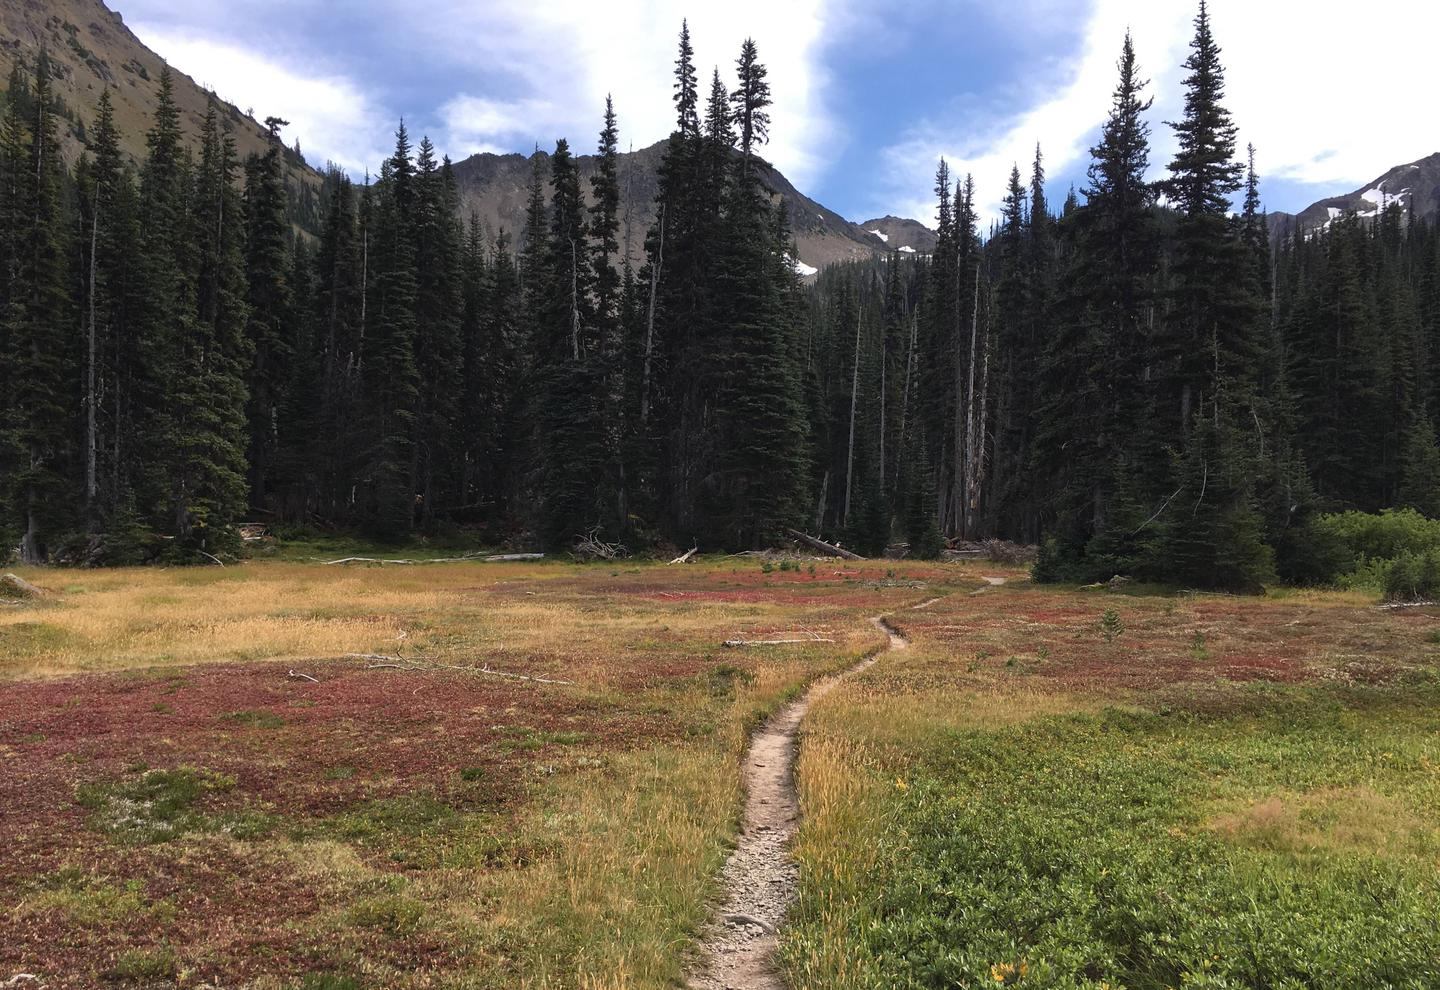 Subalpine meadow surrounded by trees and mountain peaksLower Royal Meadow